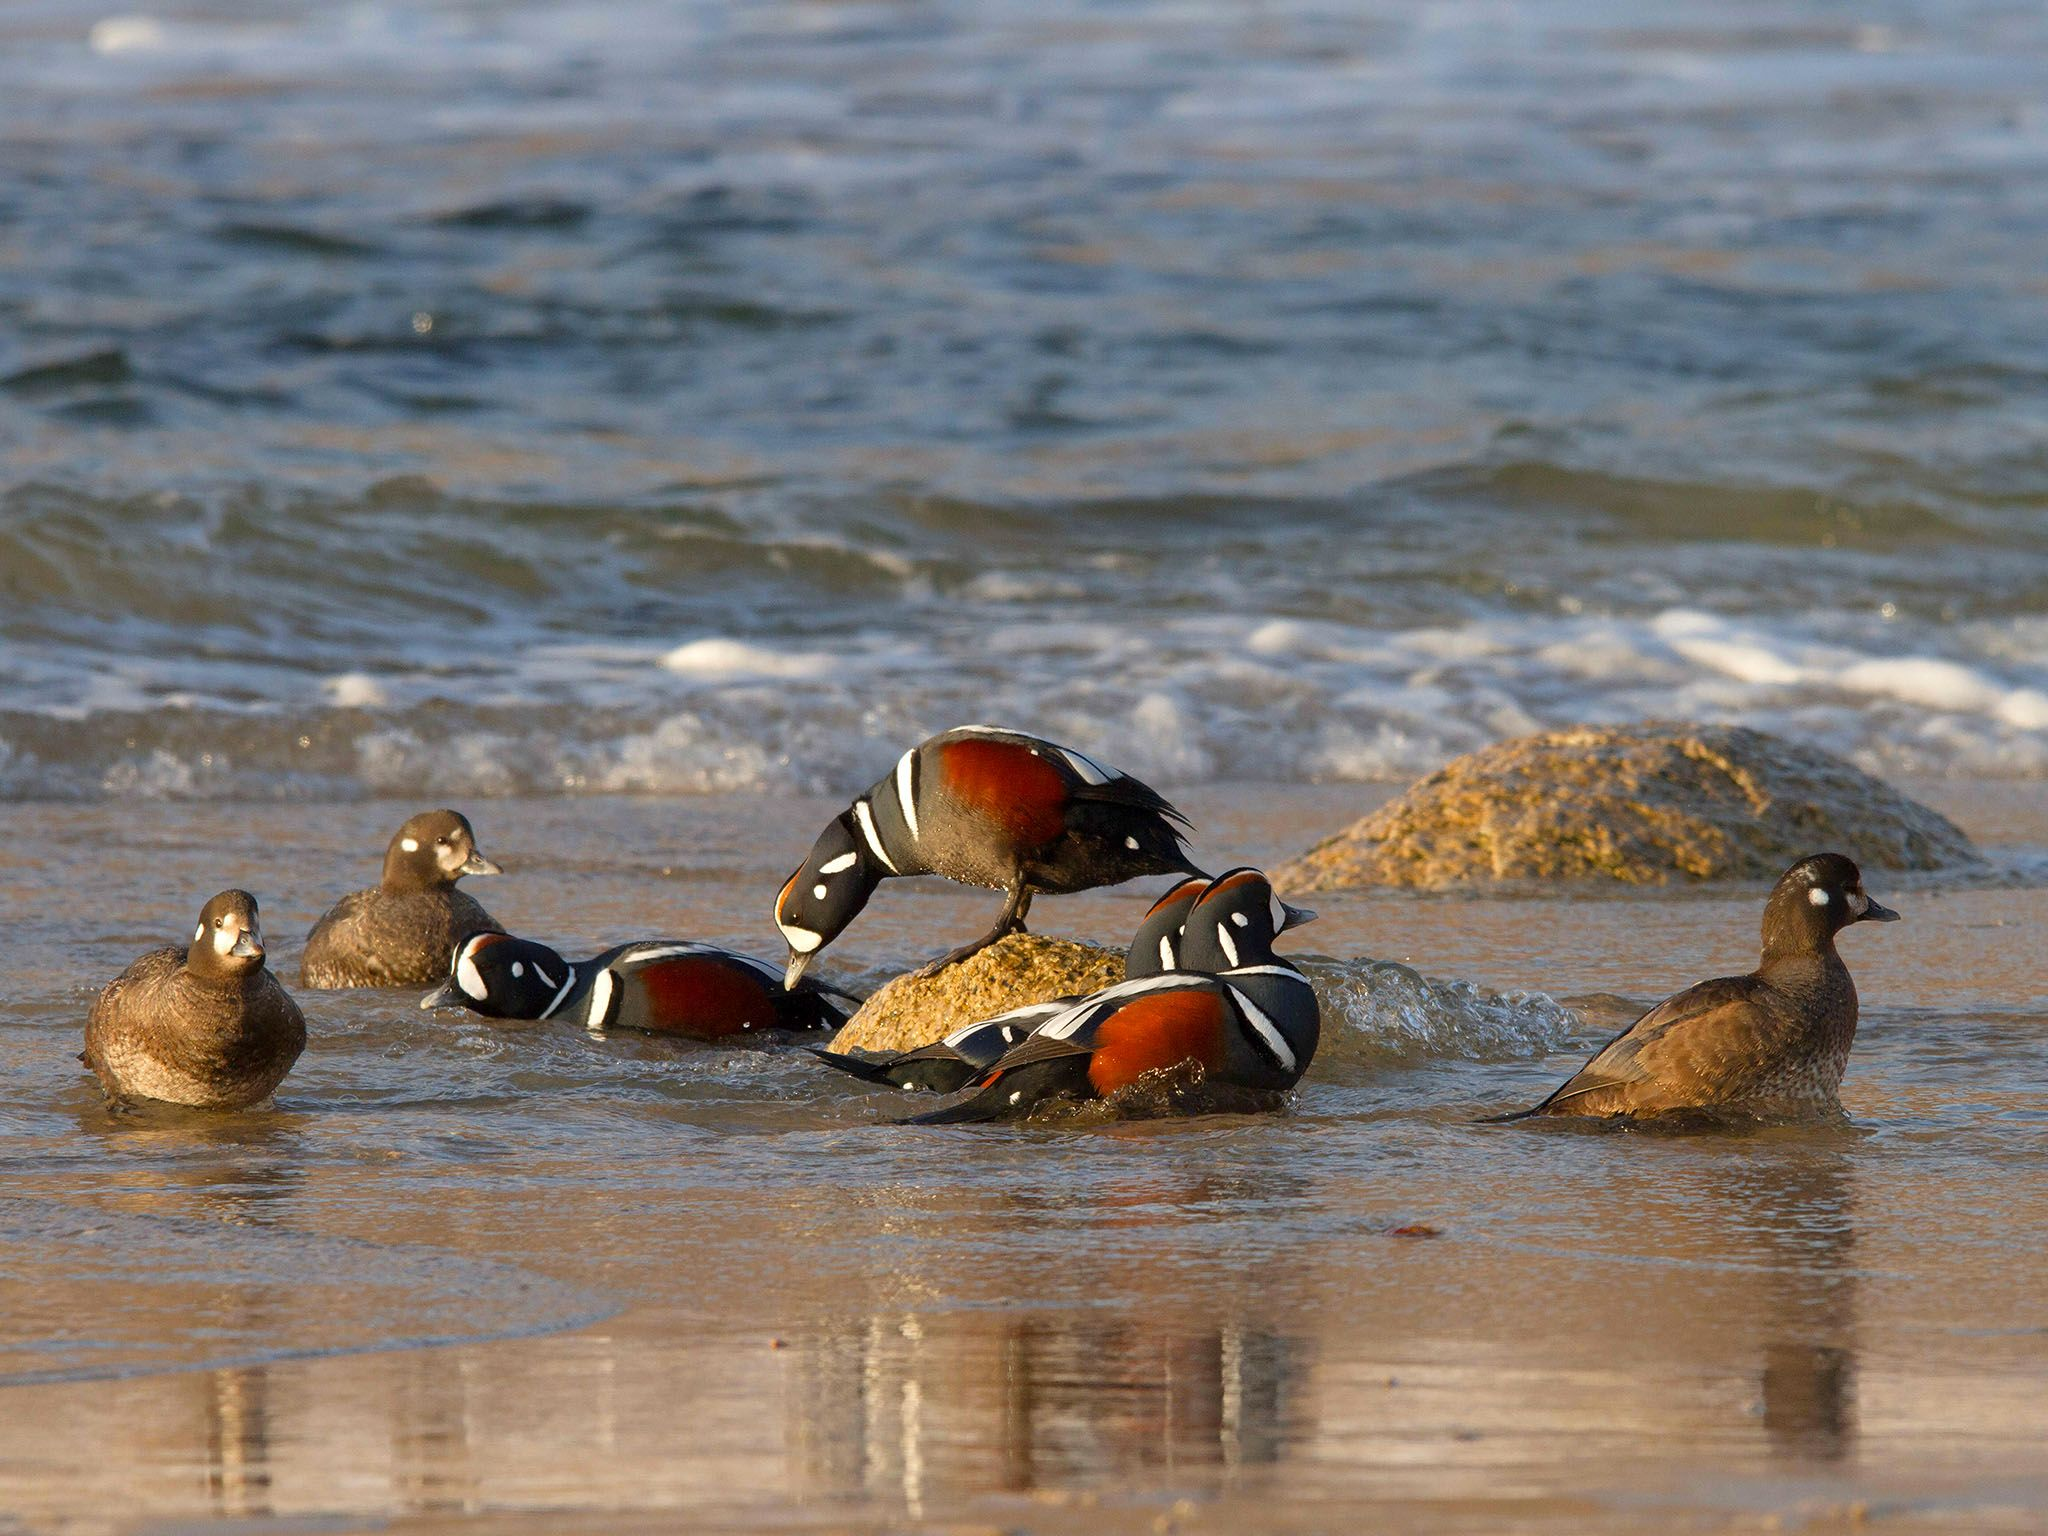 Harlequin ducks at the coast; only the males show full coloration. This image is from Amur:... [Photo of the day - سپتامبر 2016]